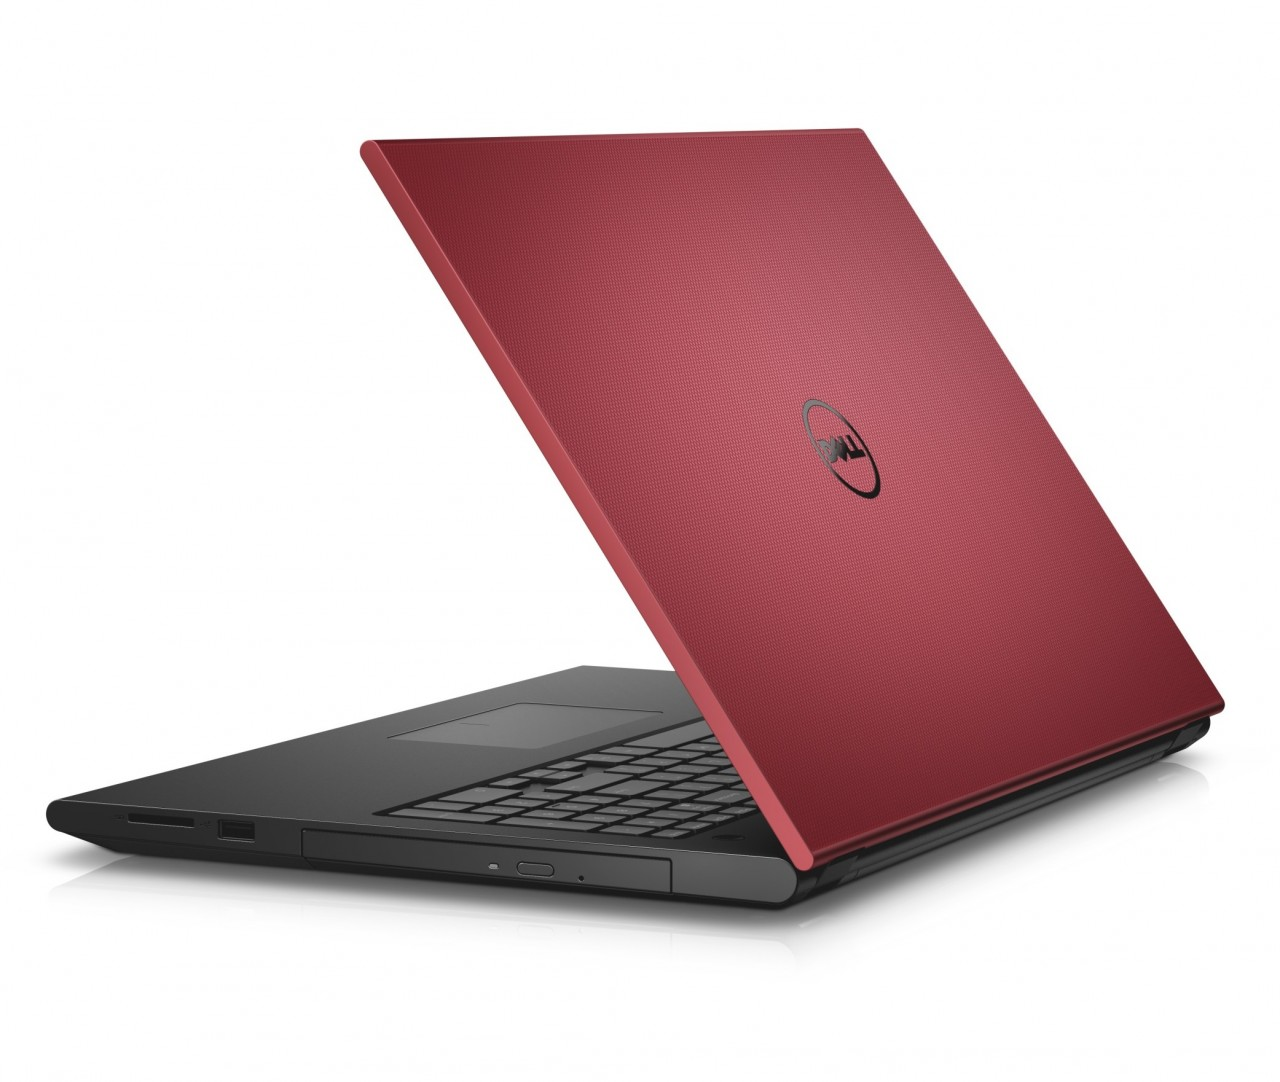 Dell Inspiron 3543 Red